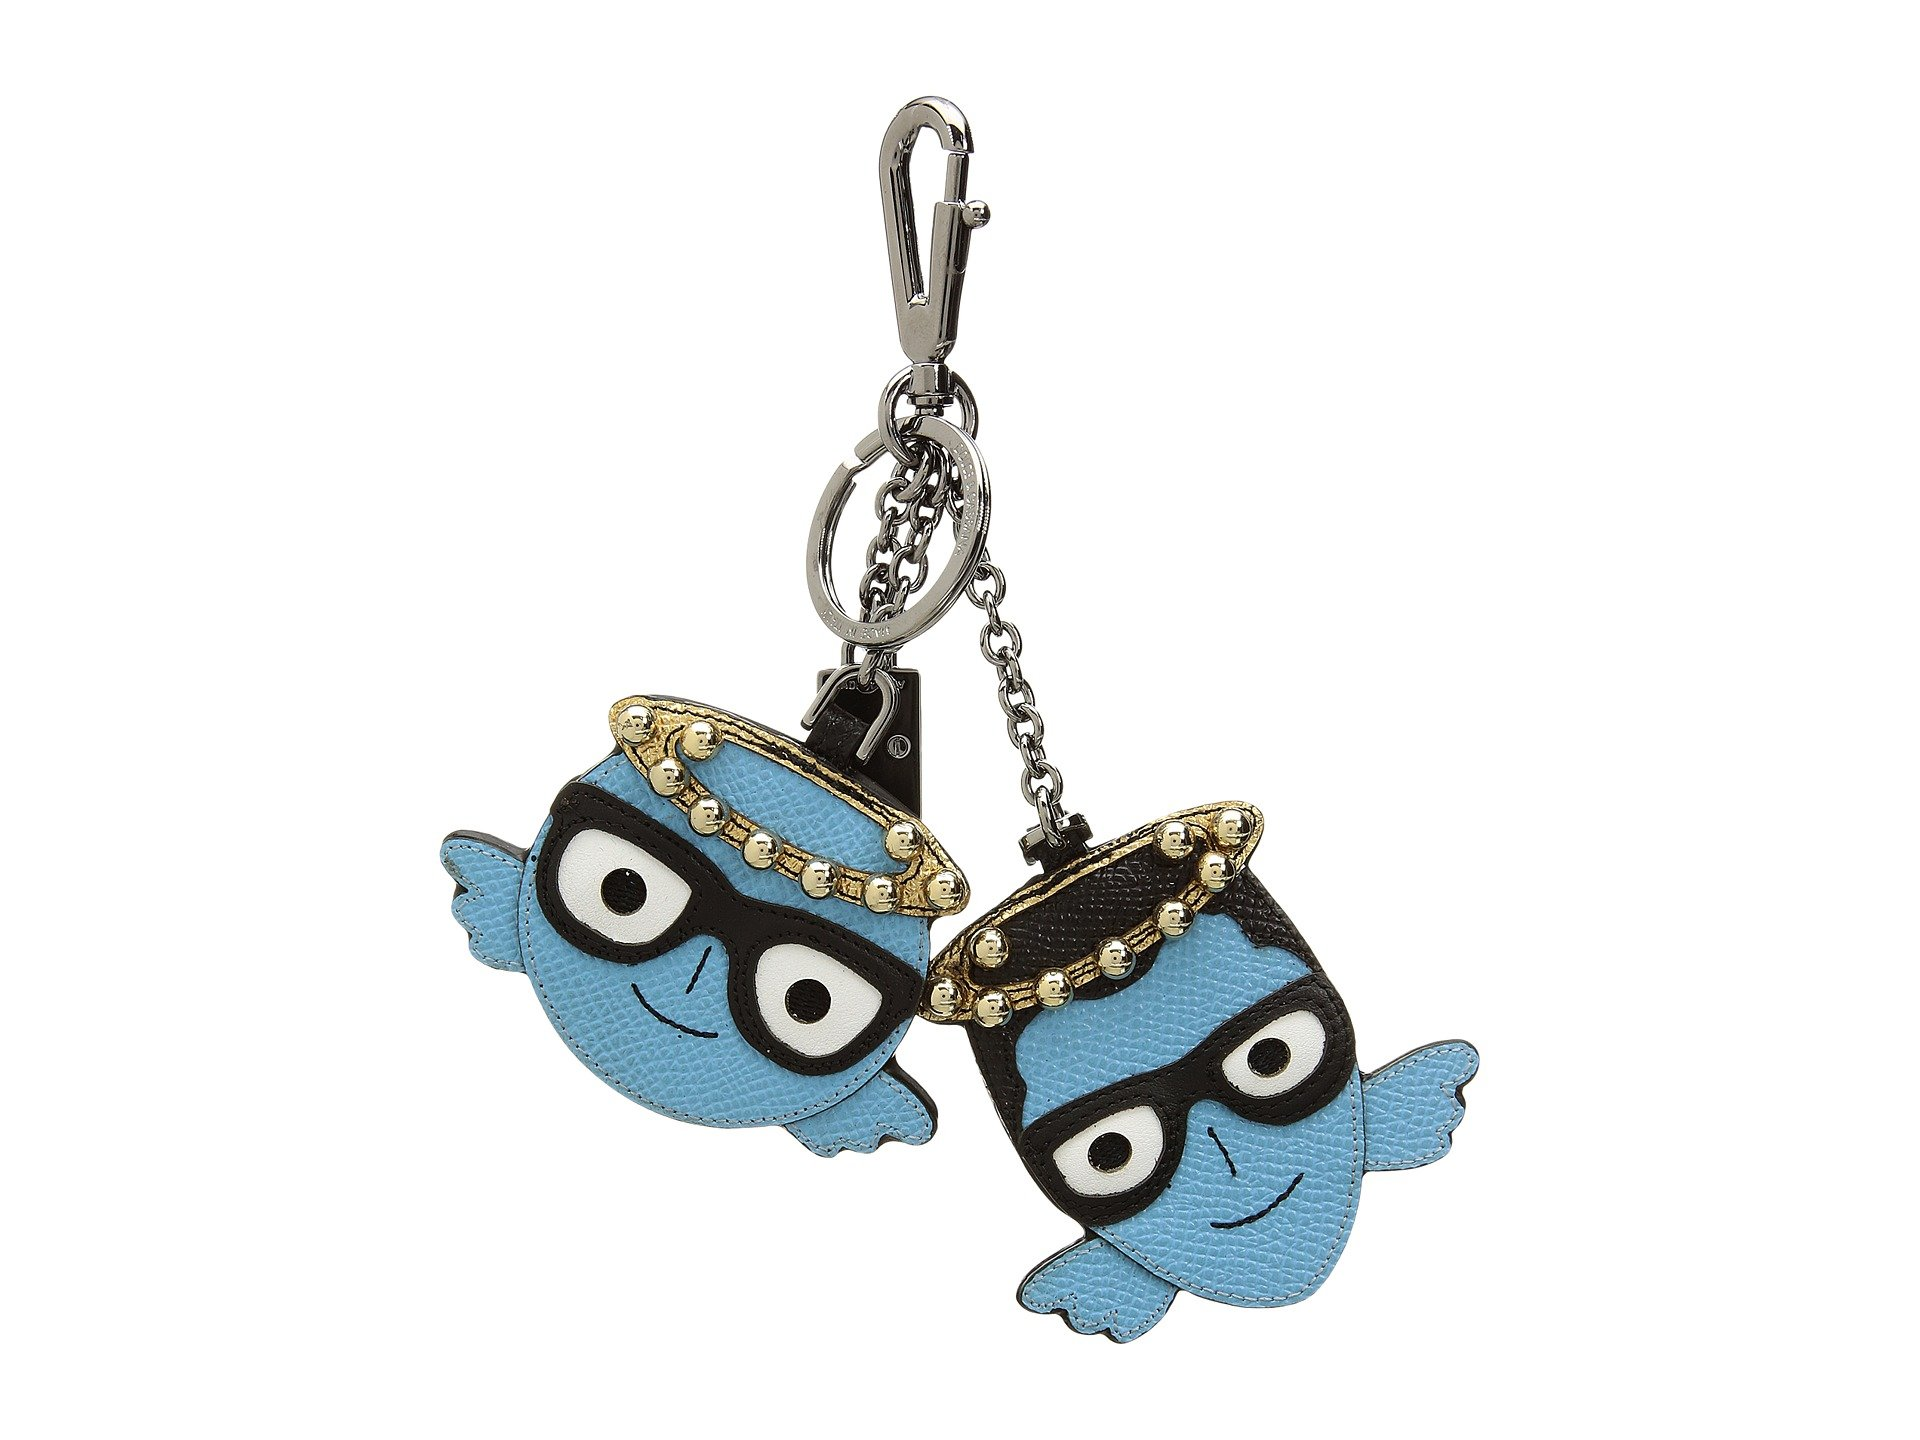 Billetera Clip para Hombre Dolce and Gabbana Angel Key Ring  + Dolce & Gabbana en VeoyCompro.net